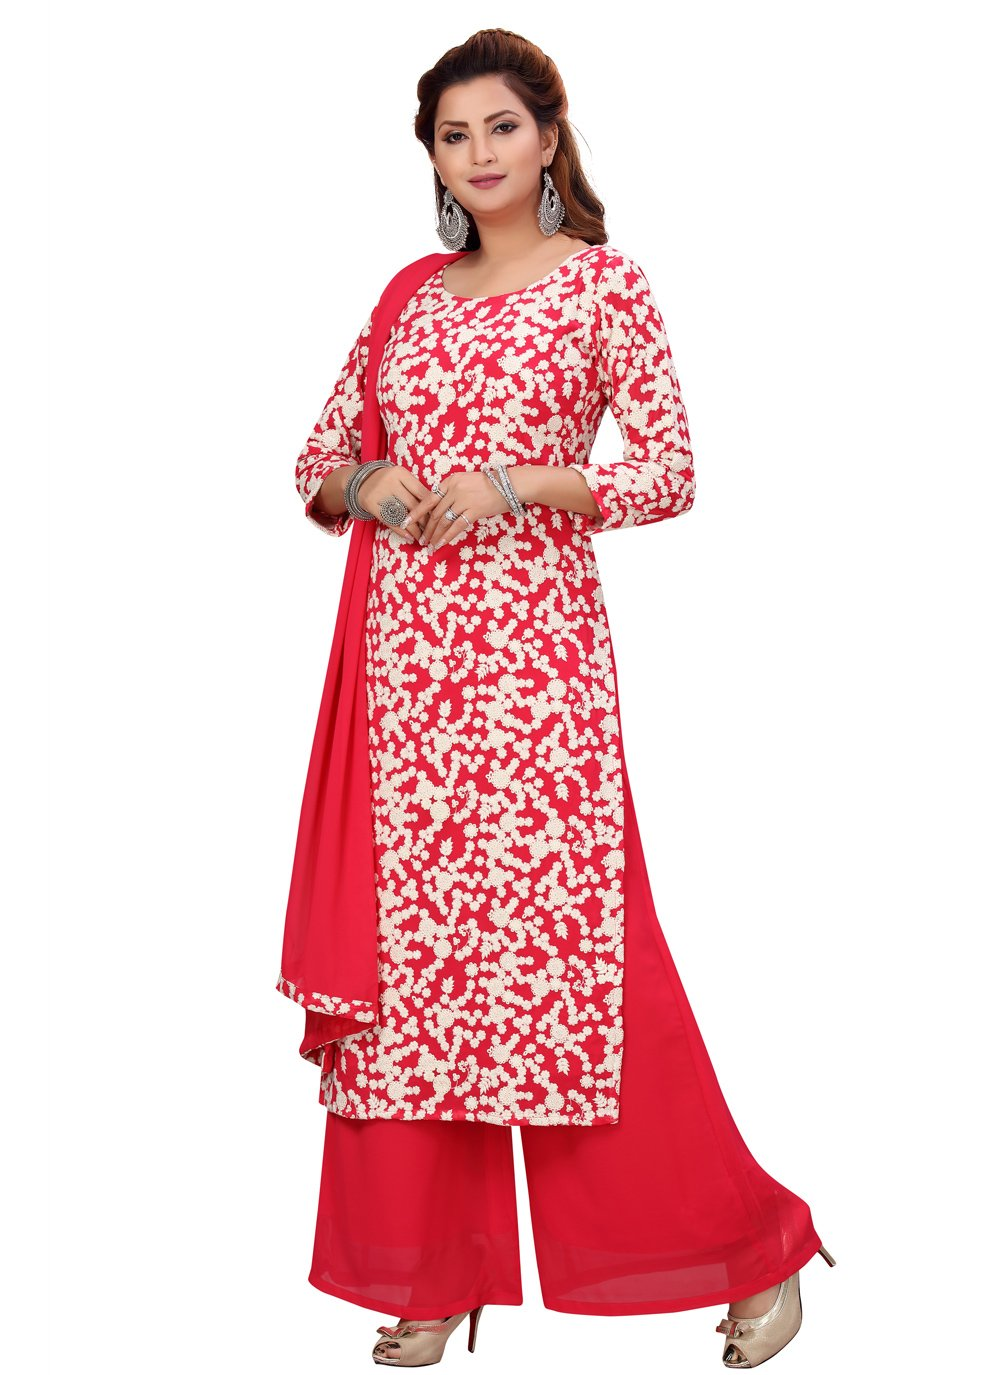 Faux Georgette Readymade Suit in Hot Pink